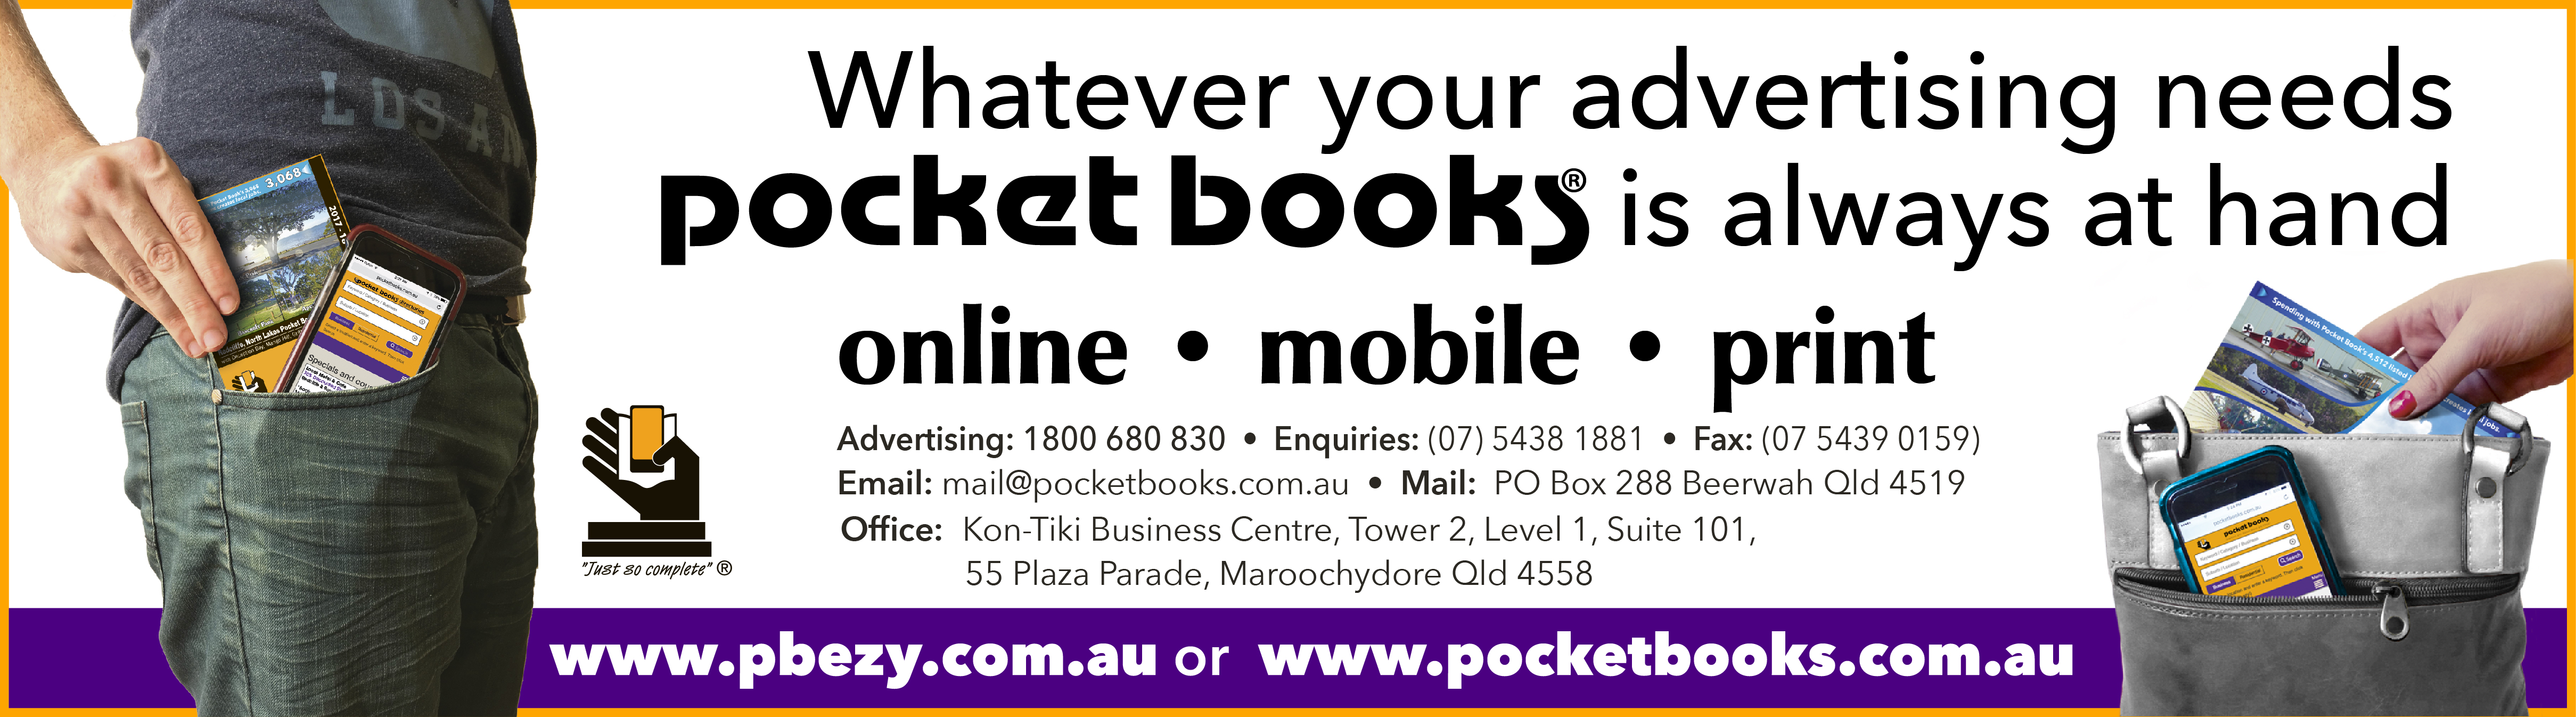 POCKET BOOKS advertisement